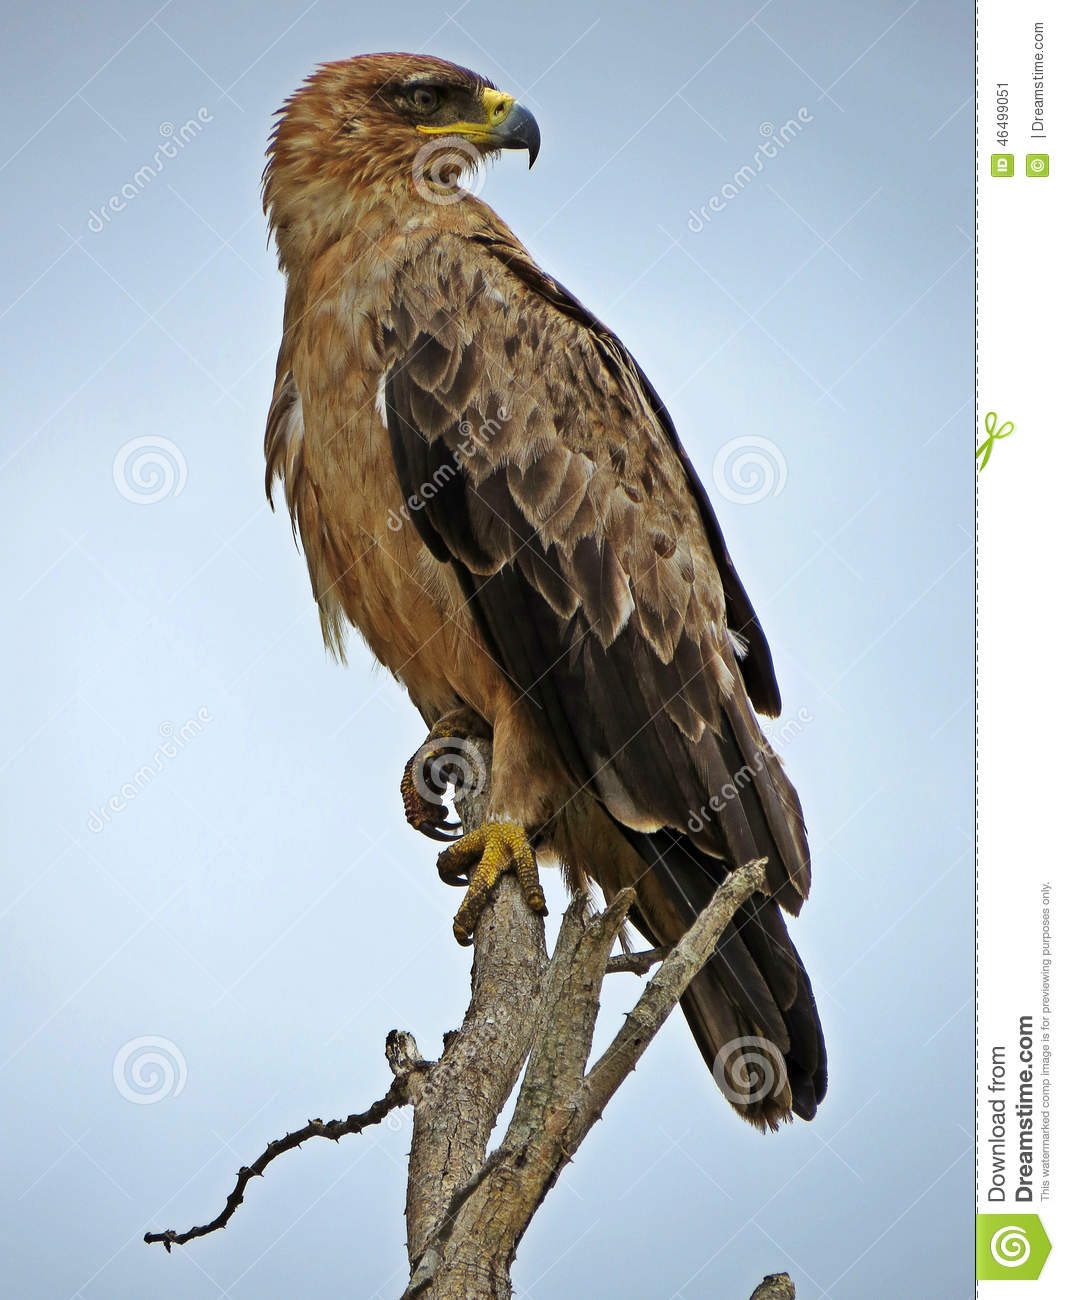 Tawny Eagle clipart #2, Download drawings